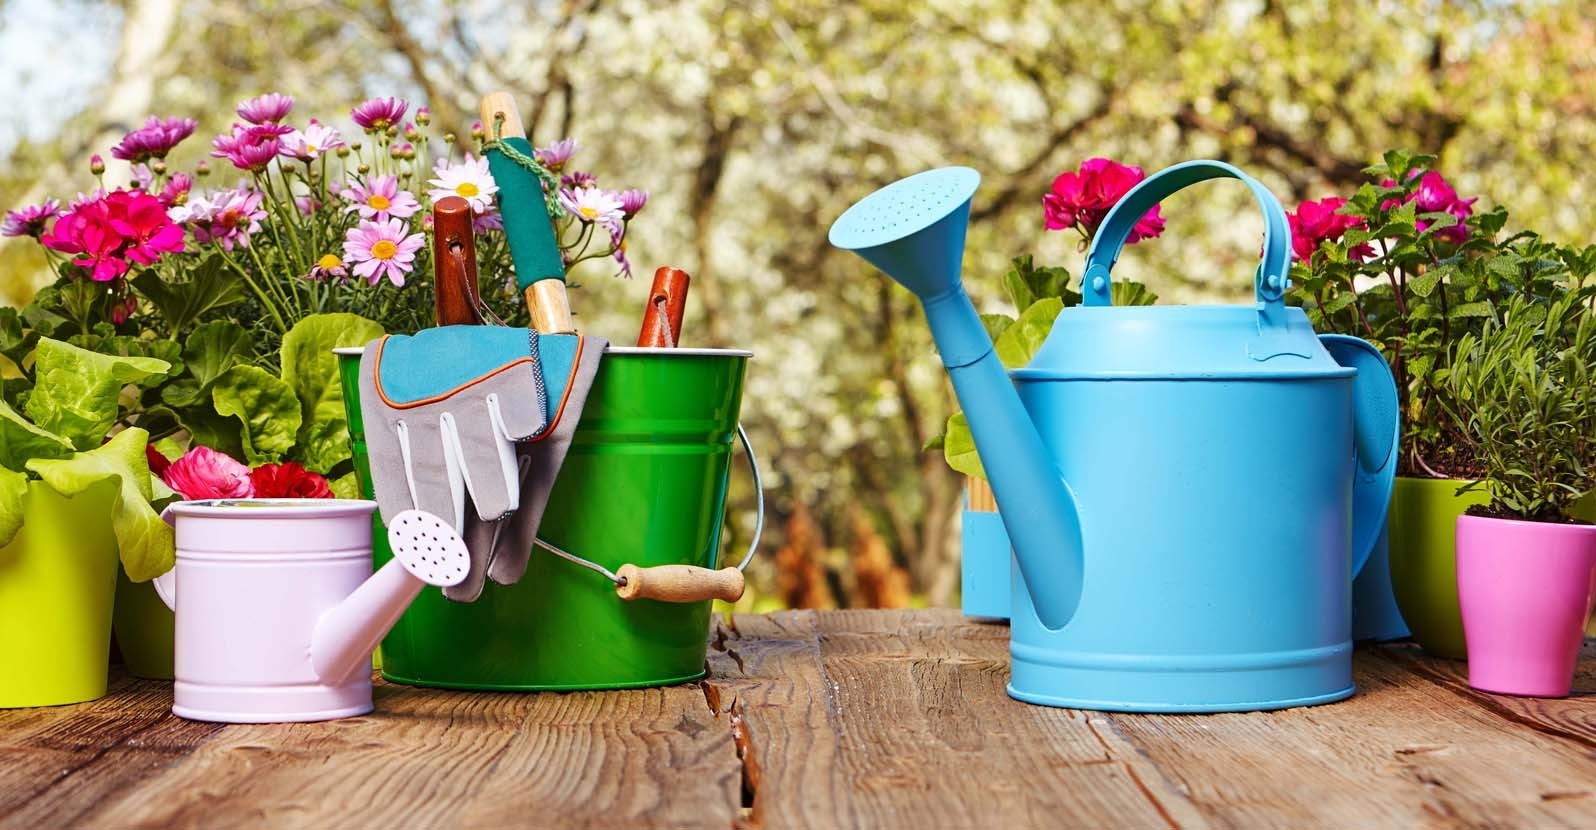 The Basic Gardening Tools Everyone Needs